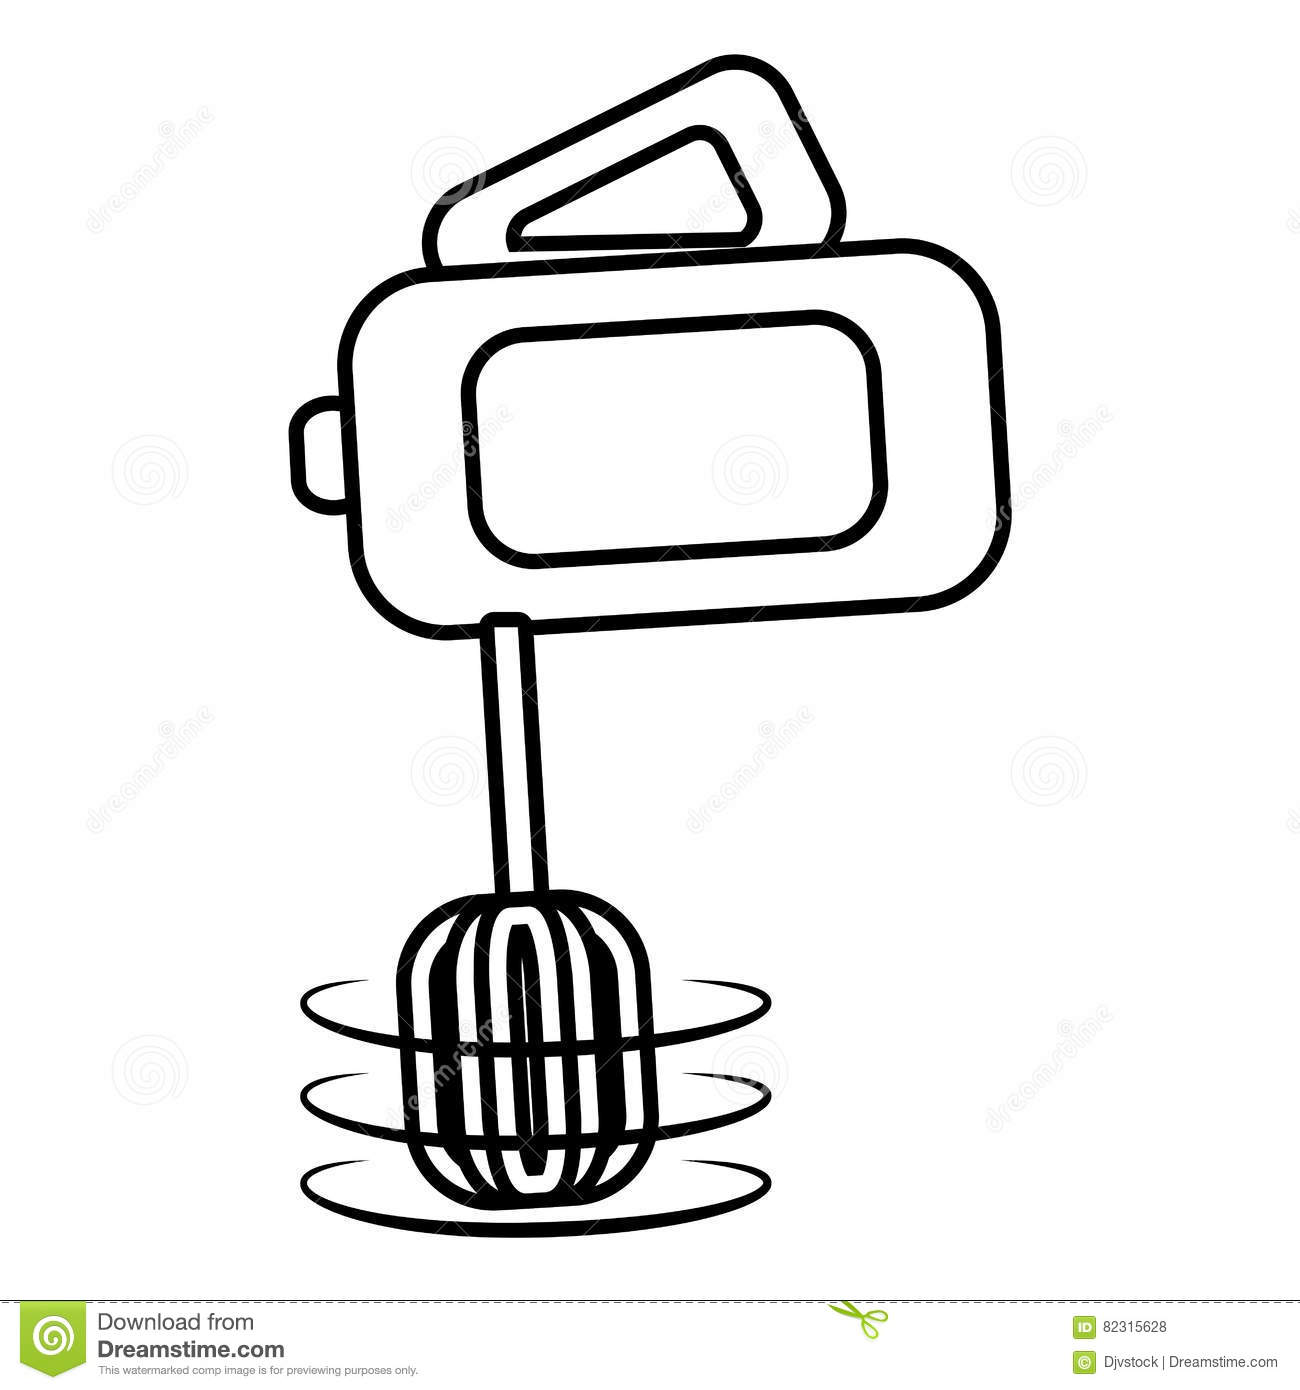 Electric Mixer Cooking Kitchen Appliance Outline Stock Illustration